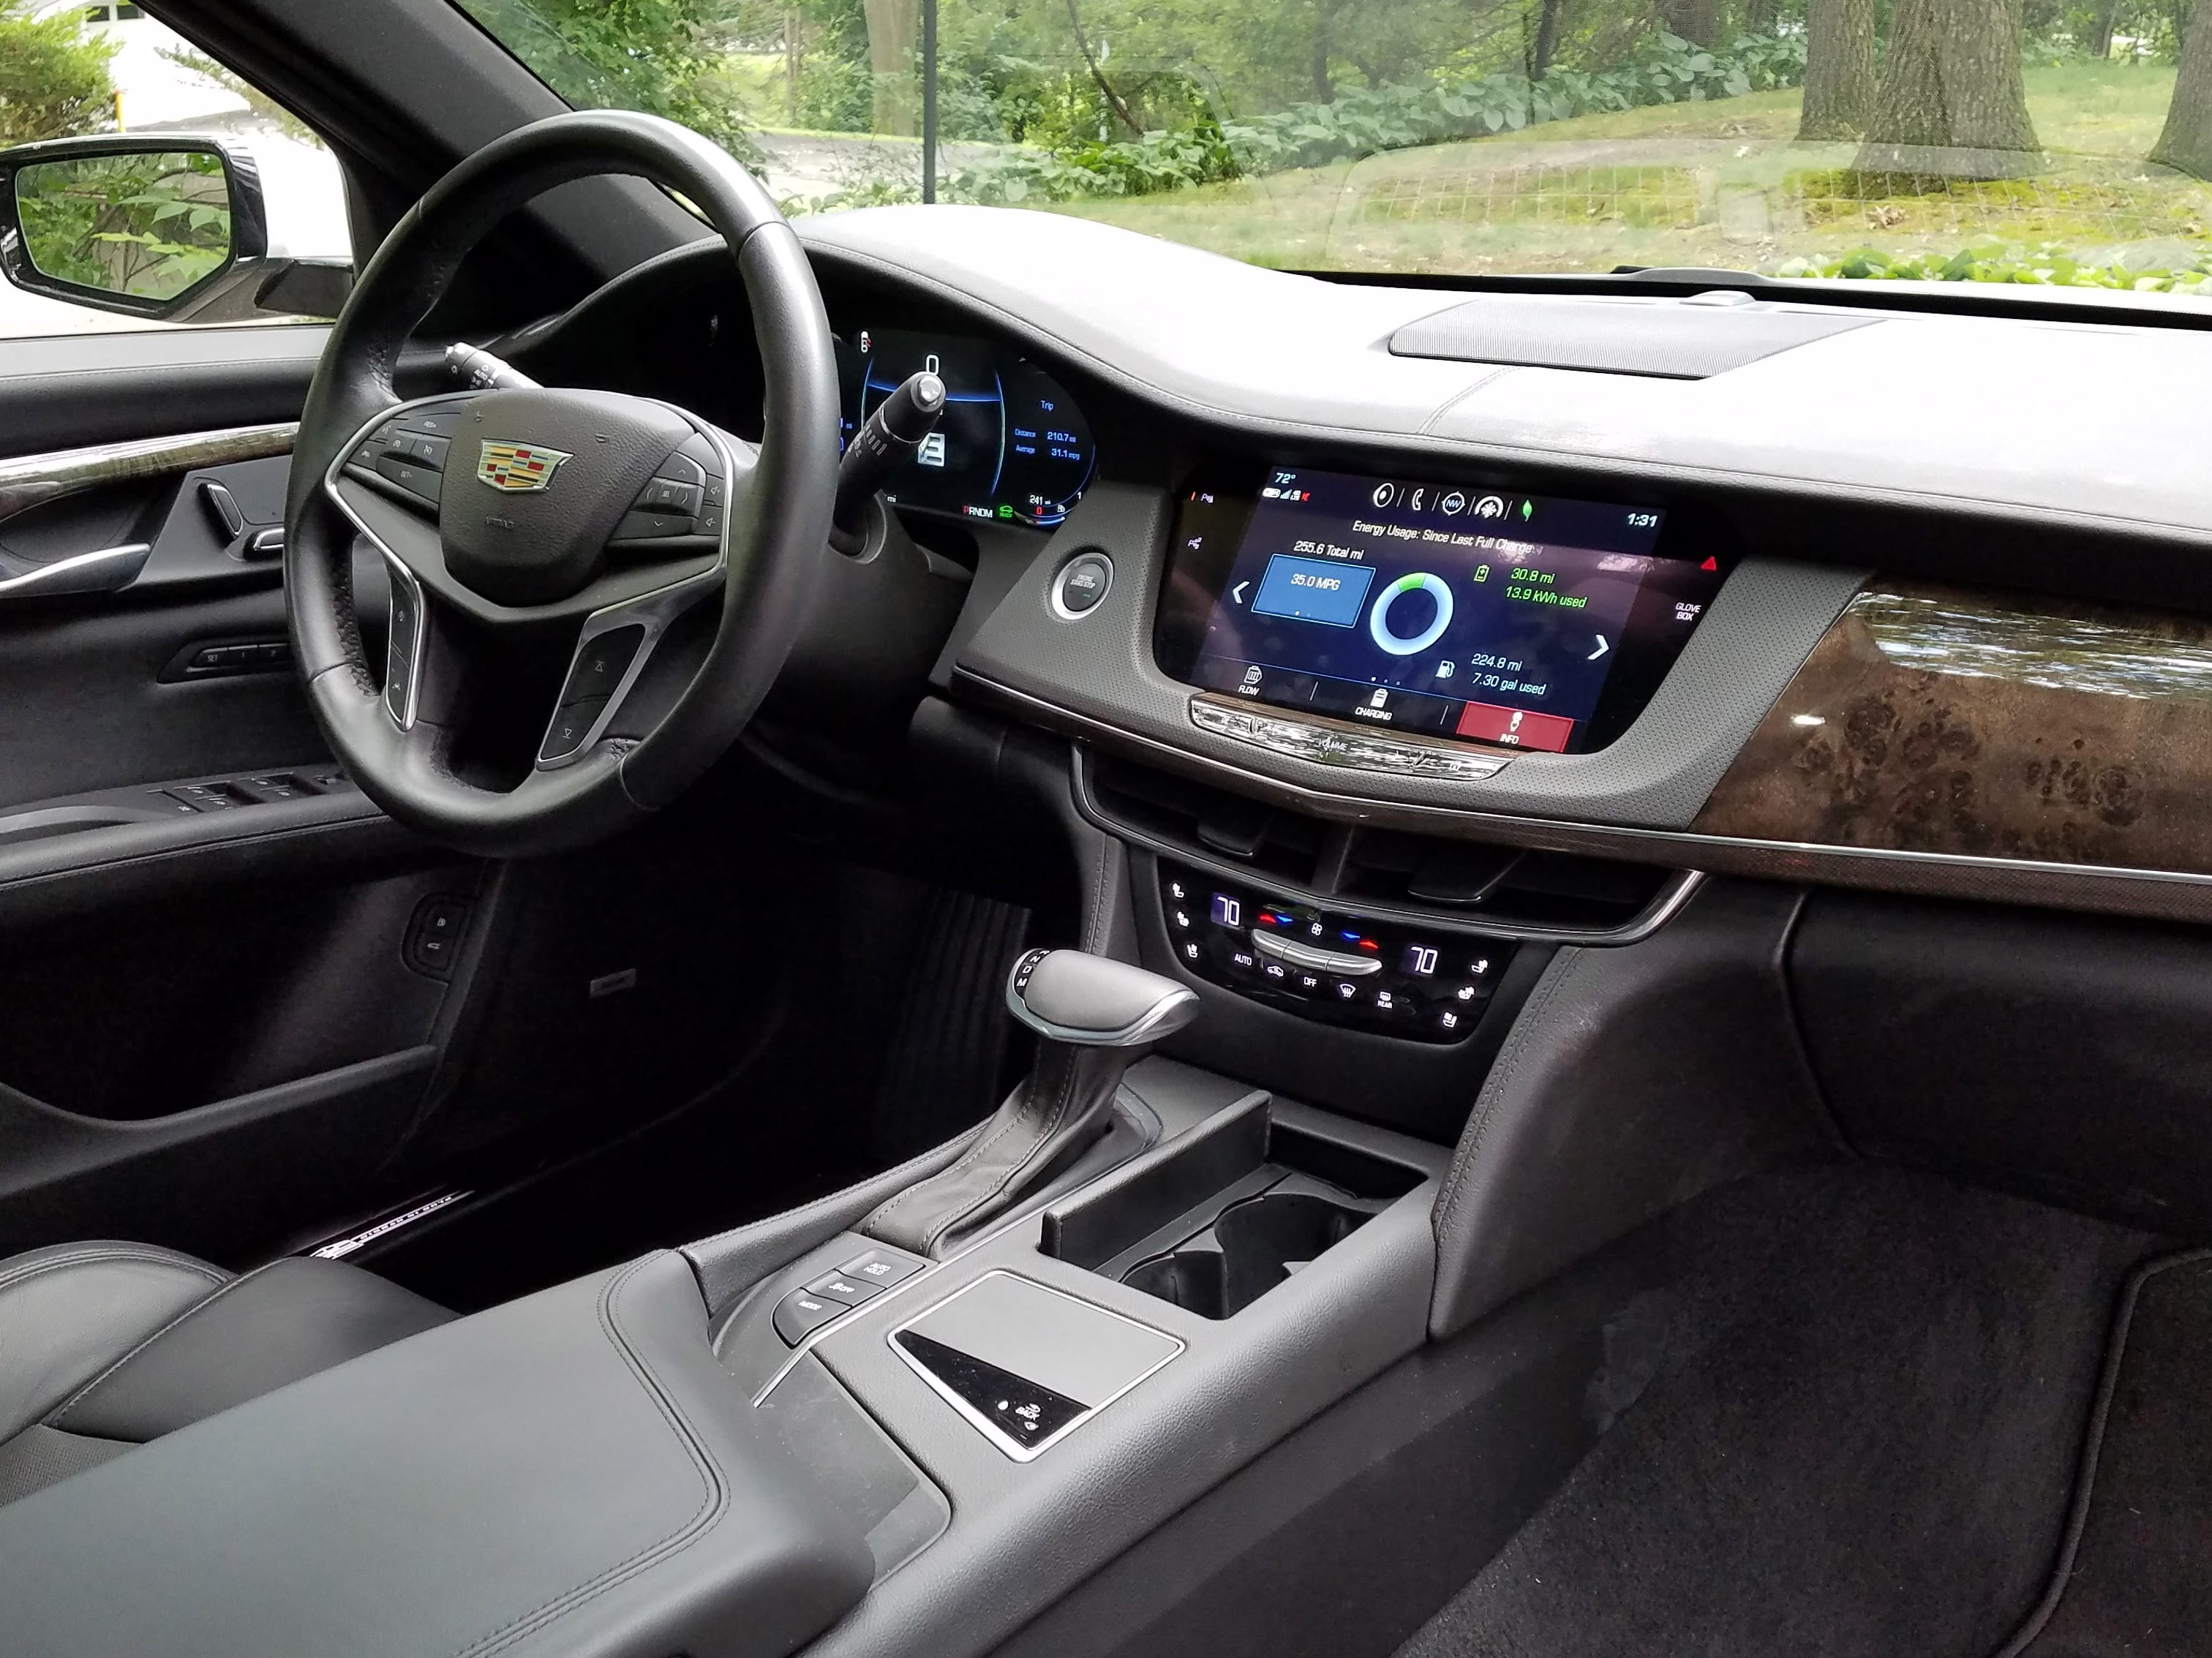 The 2017 Cadillac CT6 interior is nicely appointed with leather, wood accents, a T-shifter, heads-up display, and an 8-inch infotainment display with smart phone app connectivity.